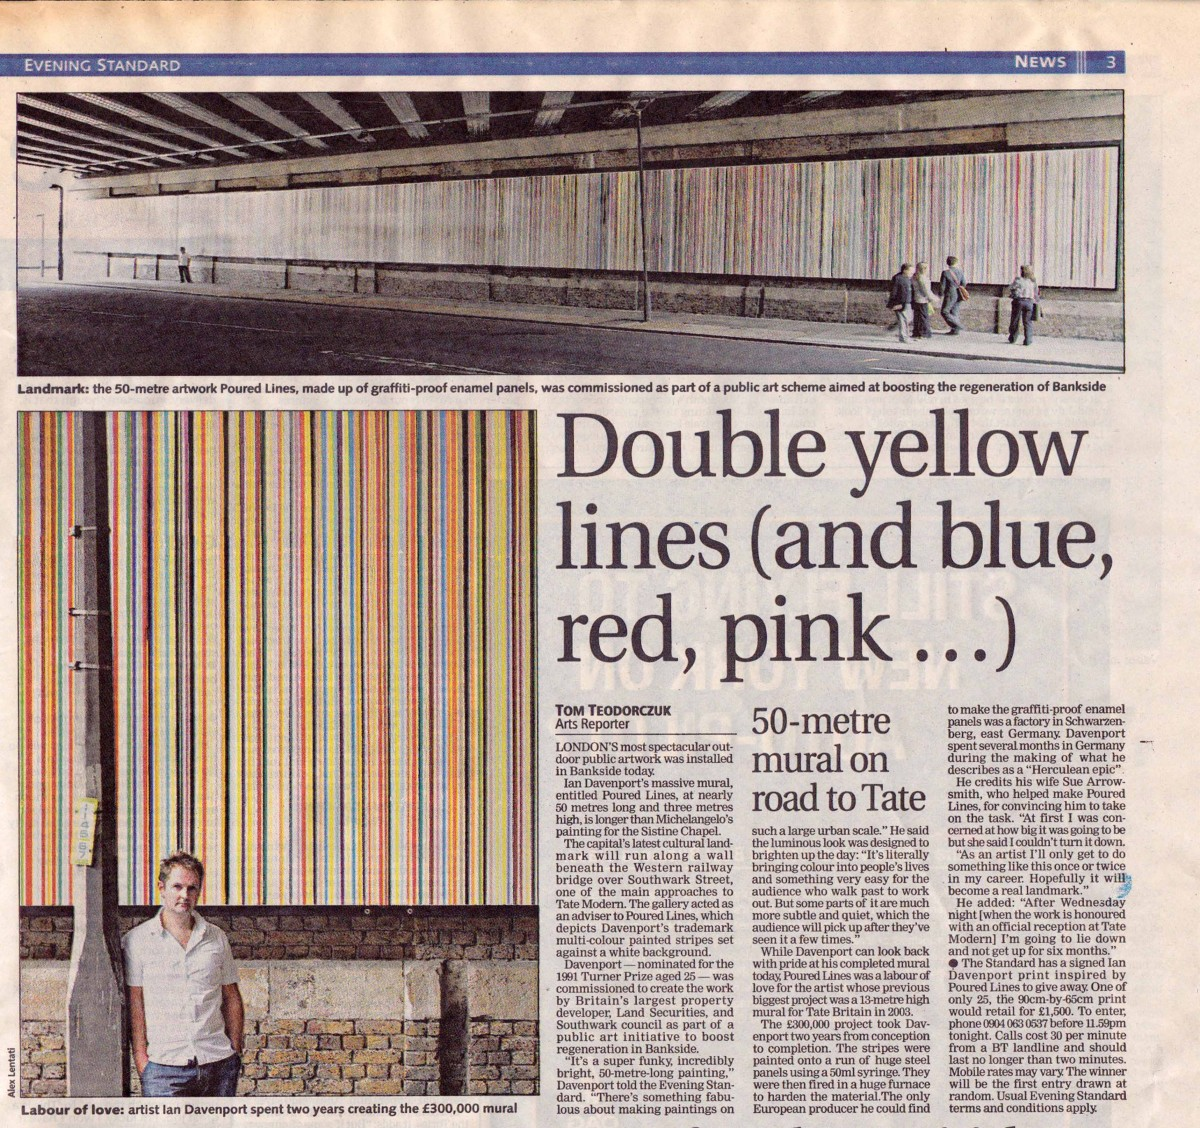 Double yellow lines (and blue, red, pink...)